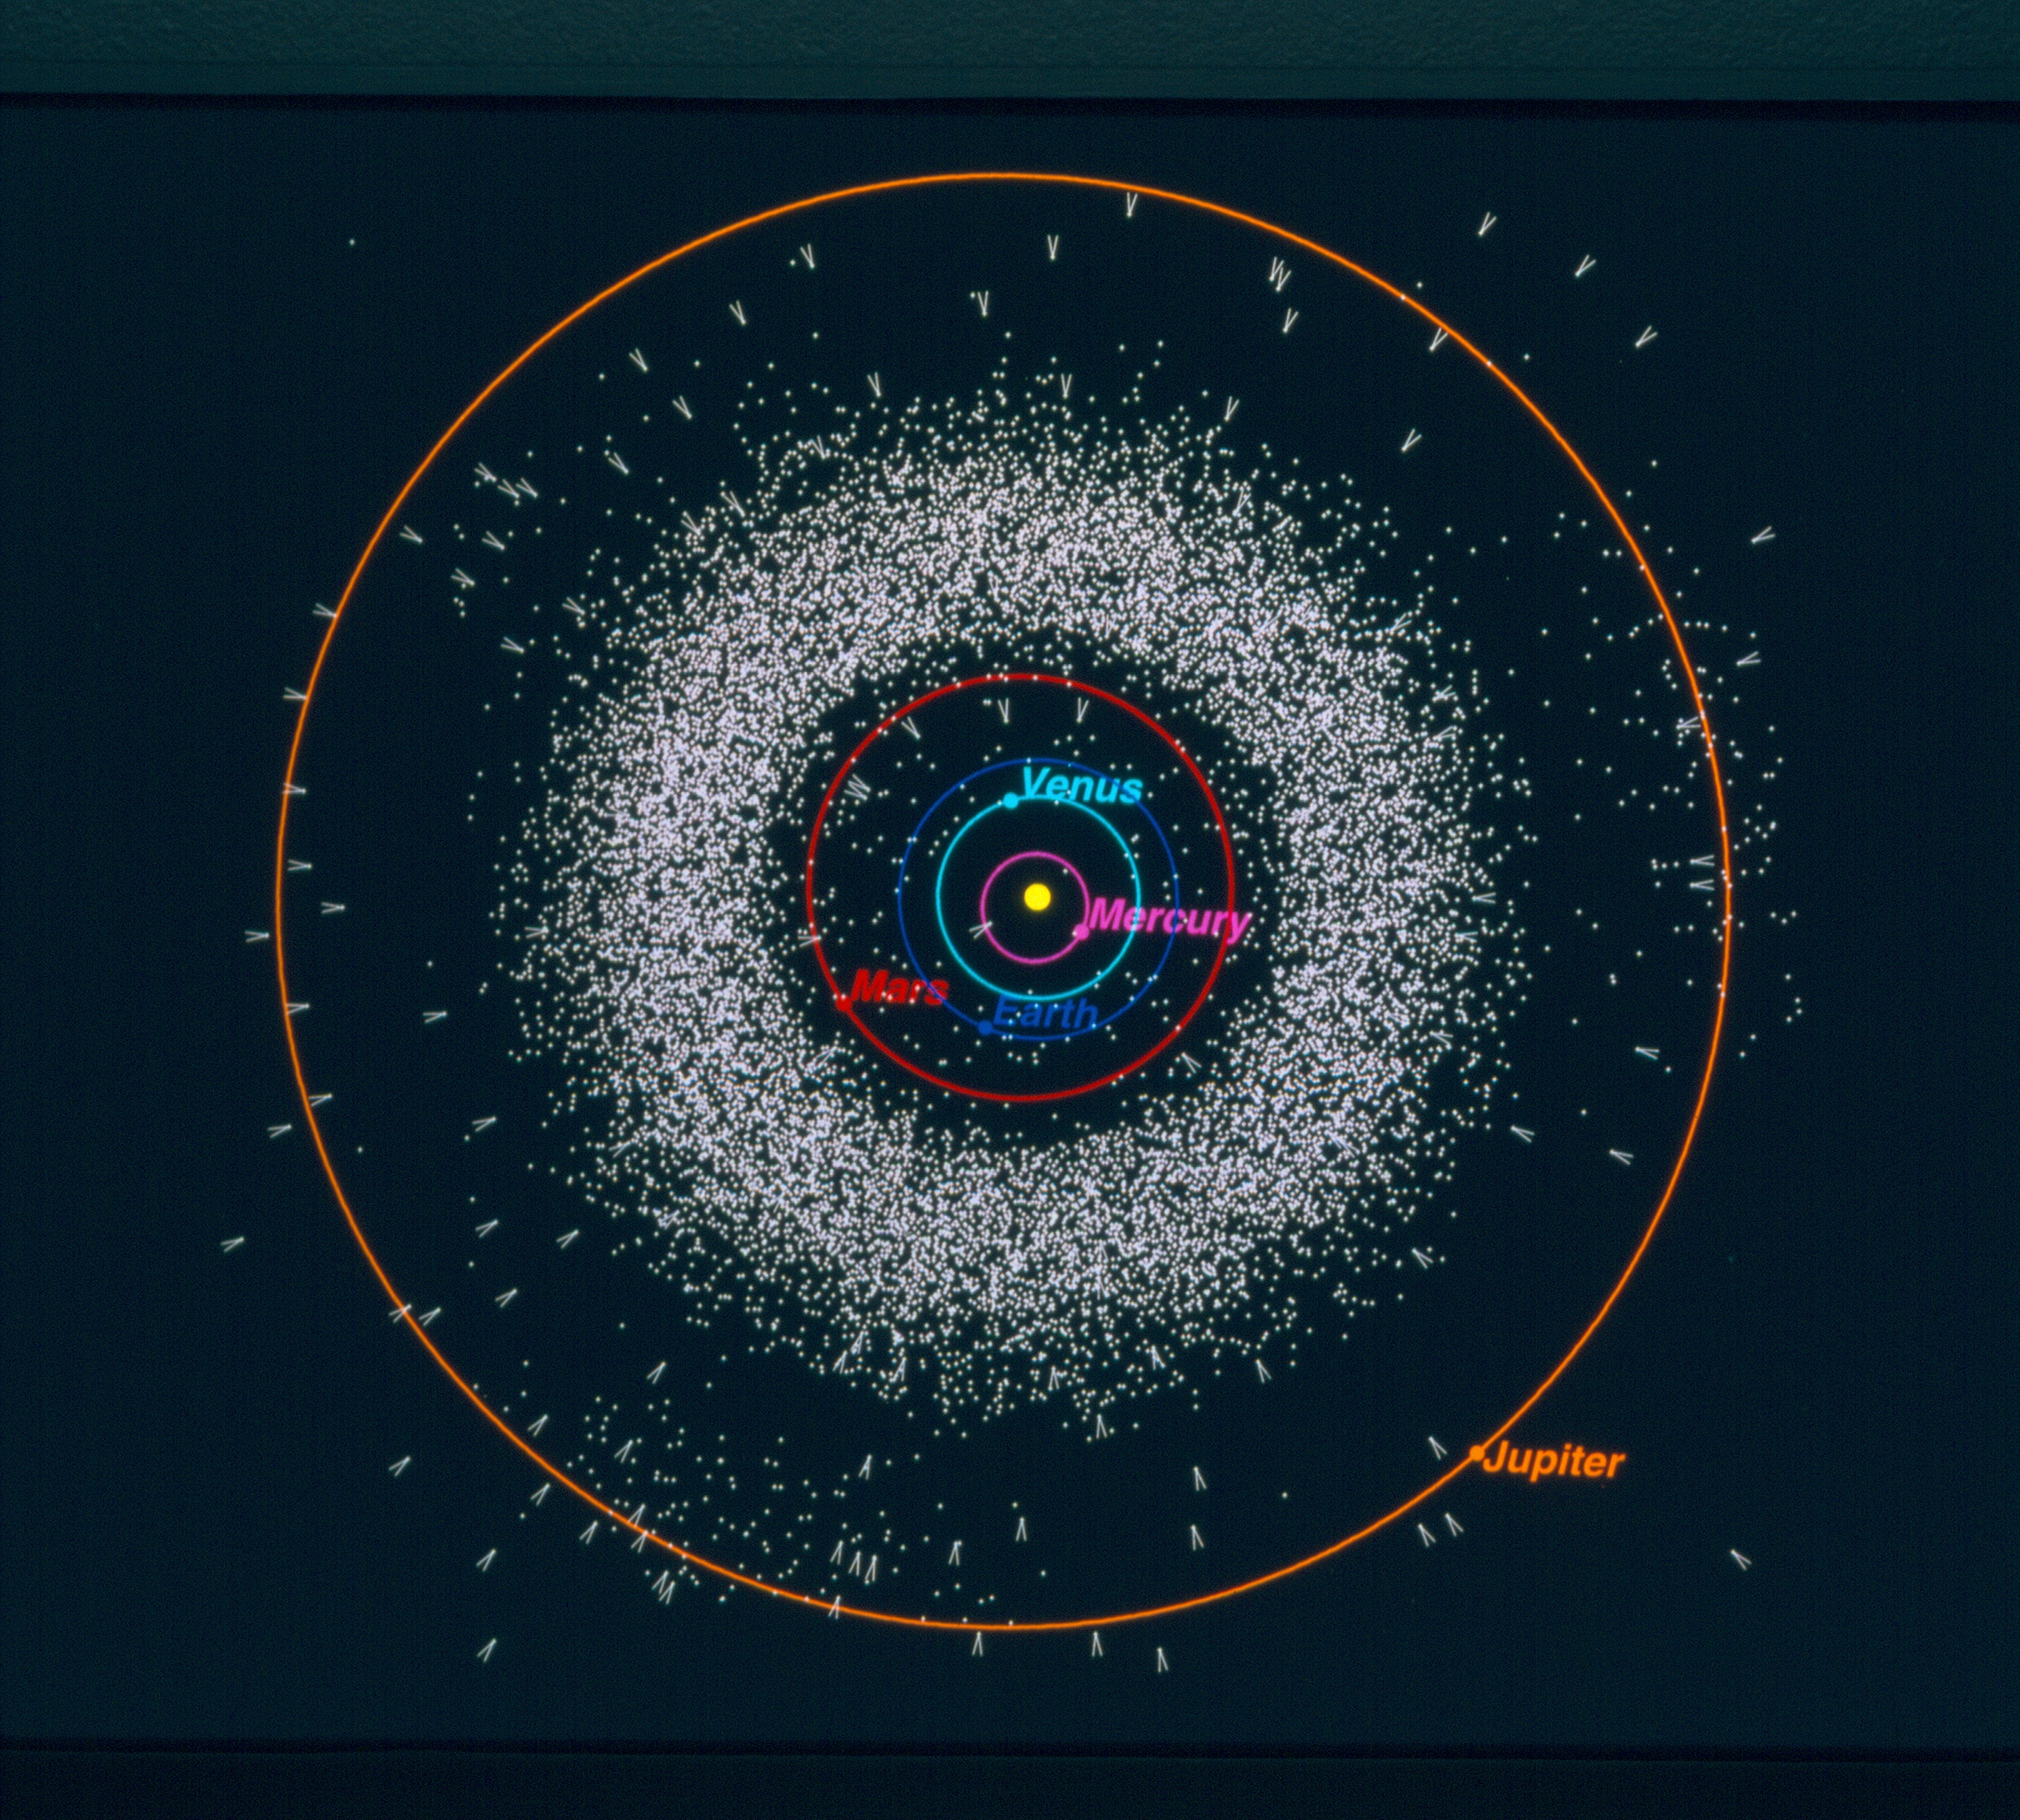 Oklahoma space stuff asteroids and comets in inner solar system i pooptronica Images